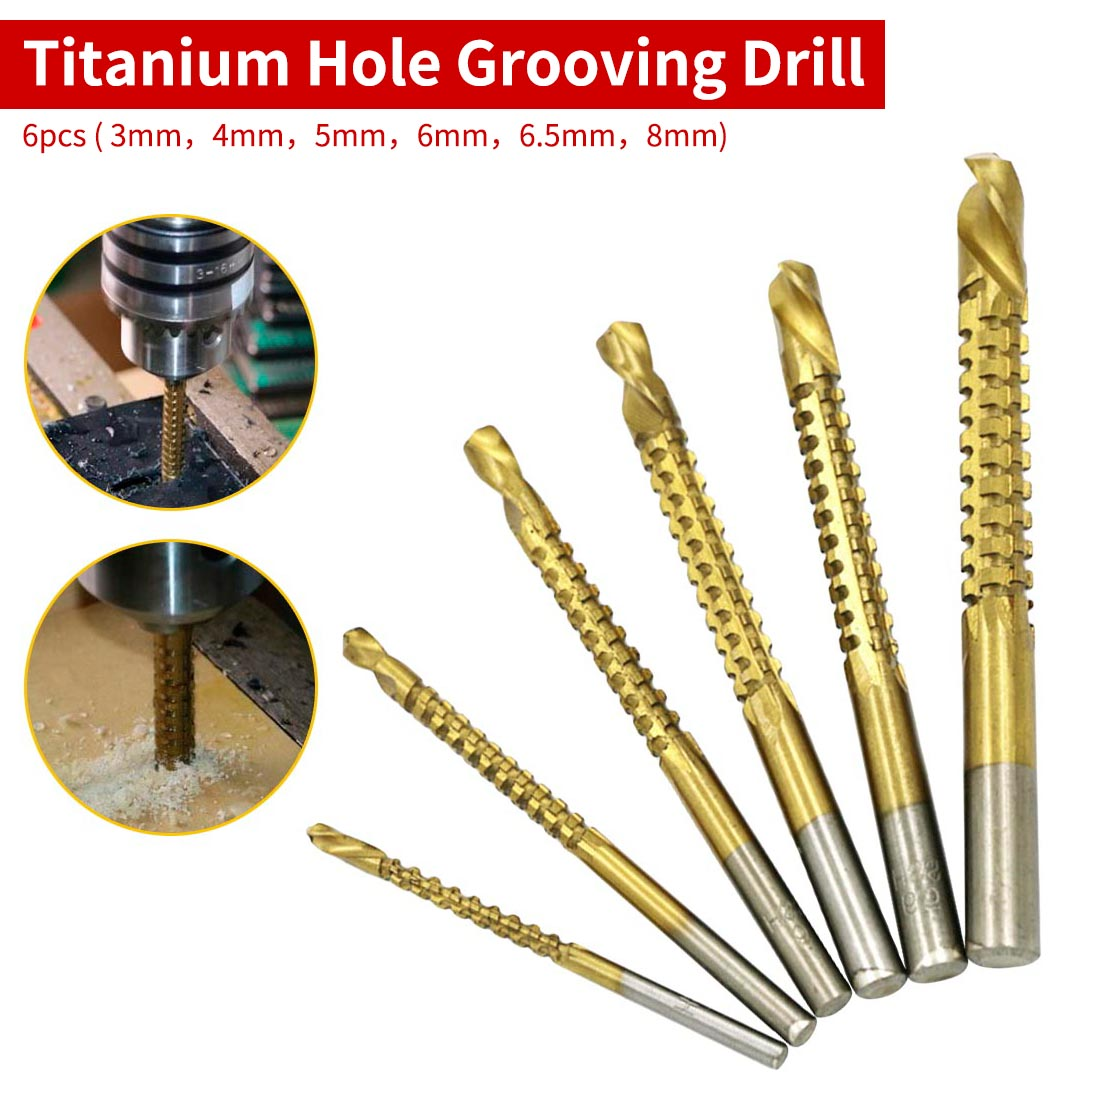 6pcs Hole Grooving Drill Bit Saw Carpenter Tool Titanium Coated HSS For Plastic Wood Woodworking Tool 3mm 4mm 5mm 6mm 6.5mm 8mm